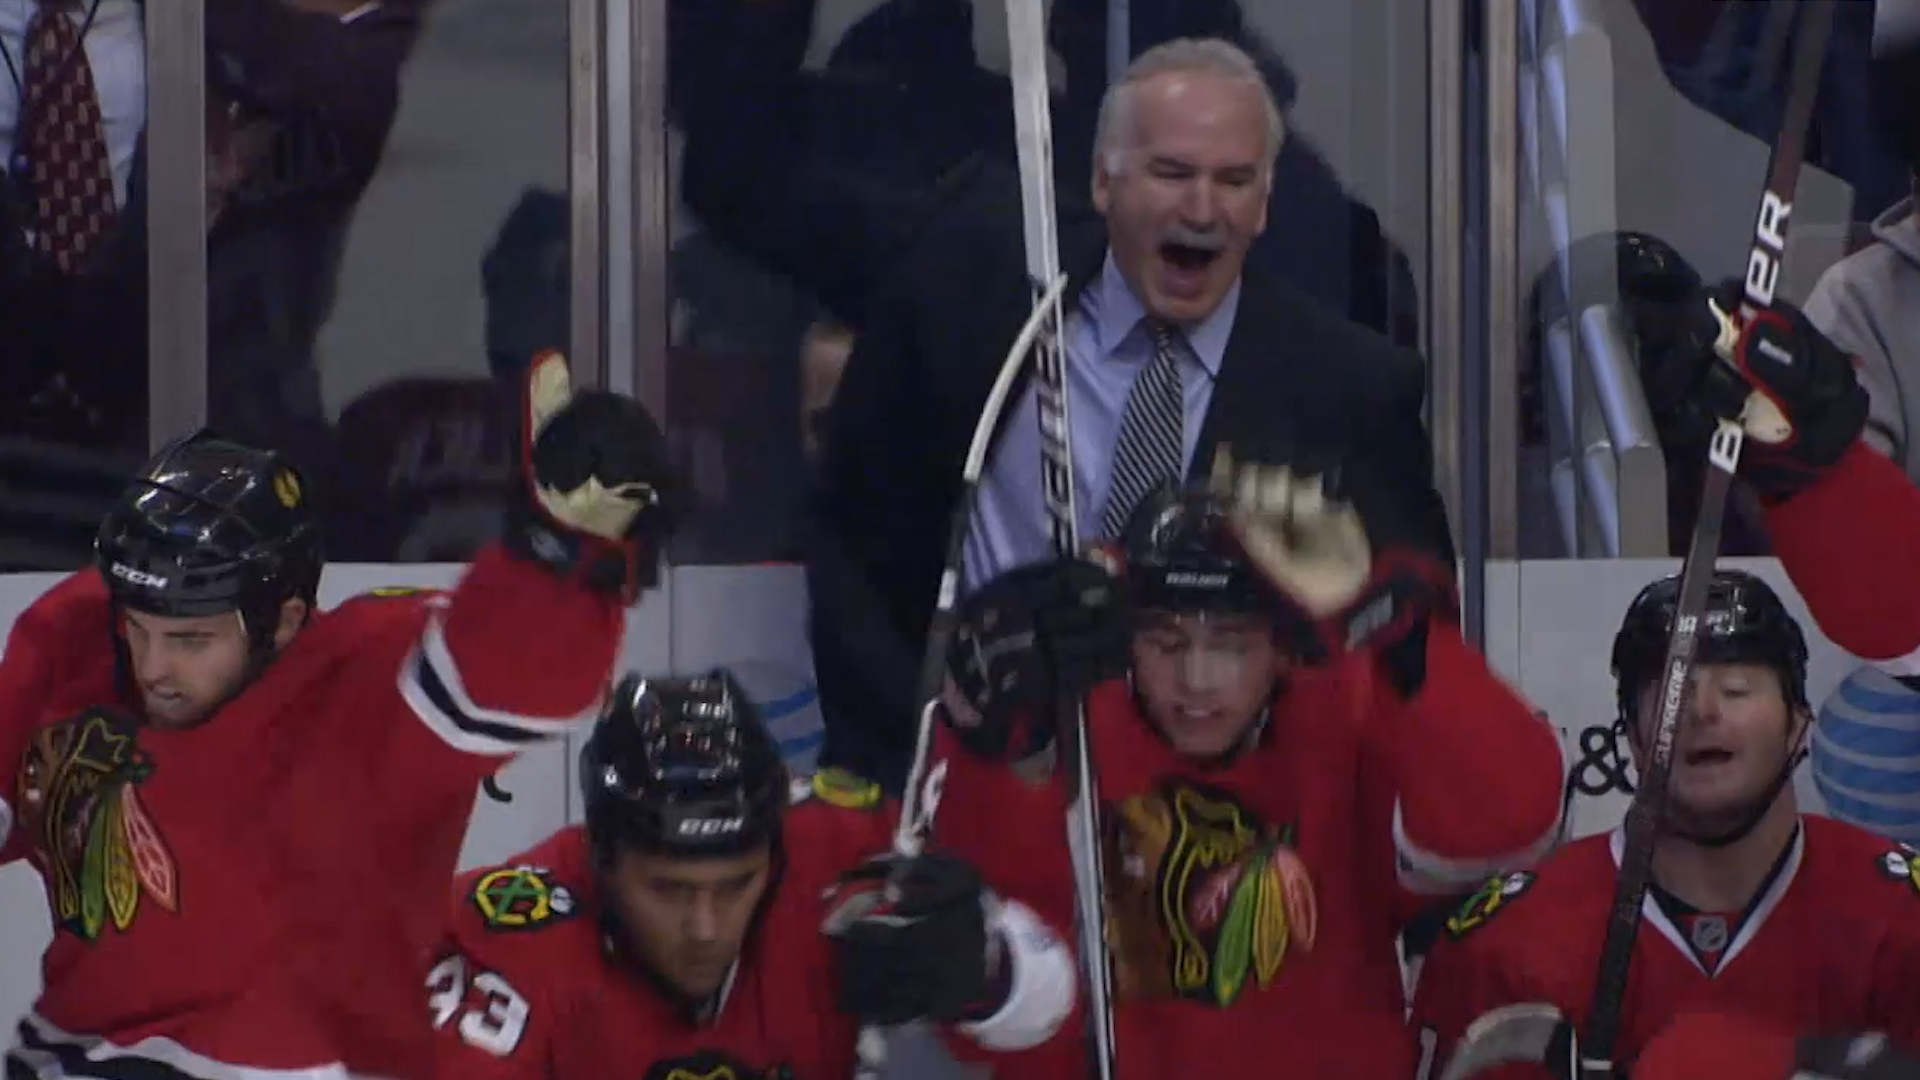 October 12, 2009: Hawks rally from 5-0 deficit vs Flames